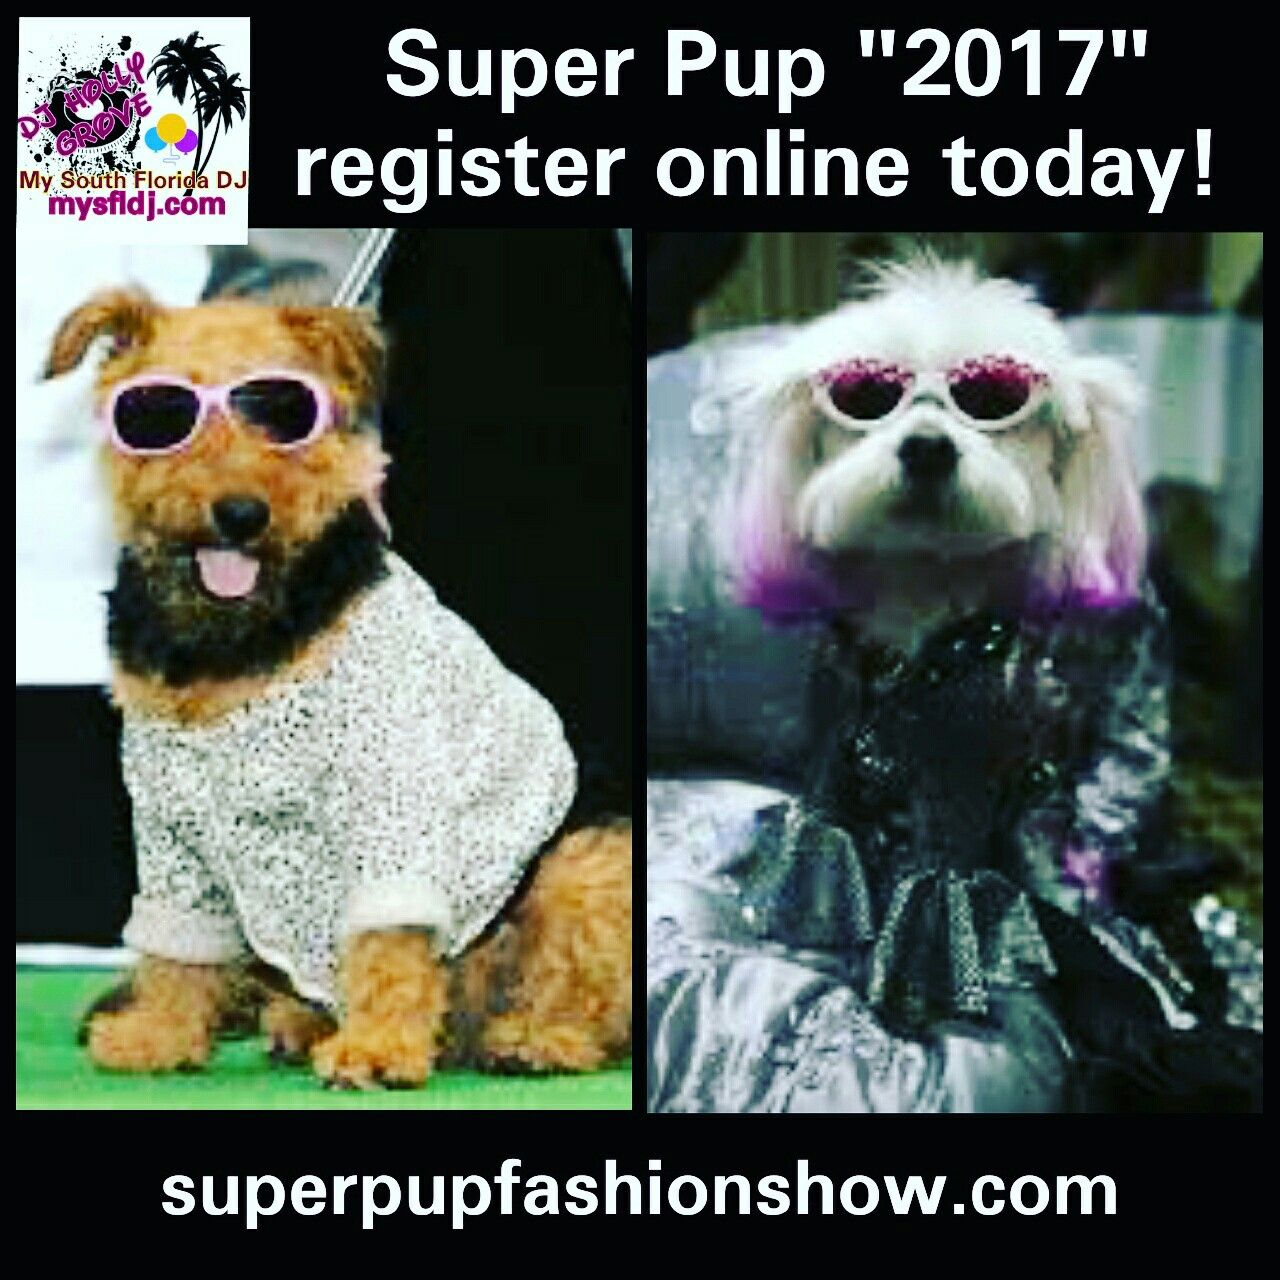 Super Pup 2017 put on by my South Florida DJ Services is